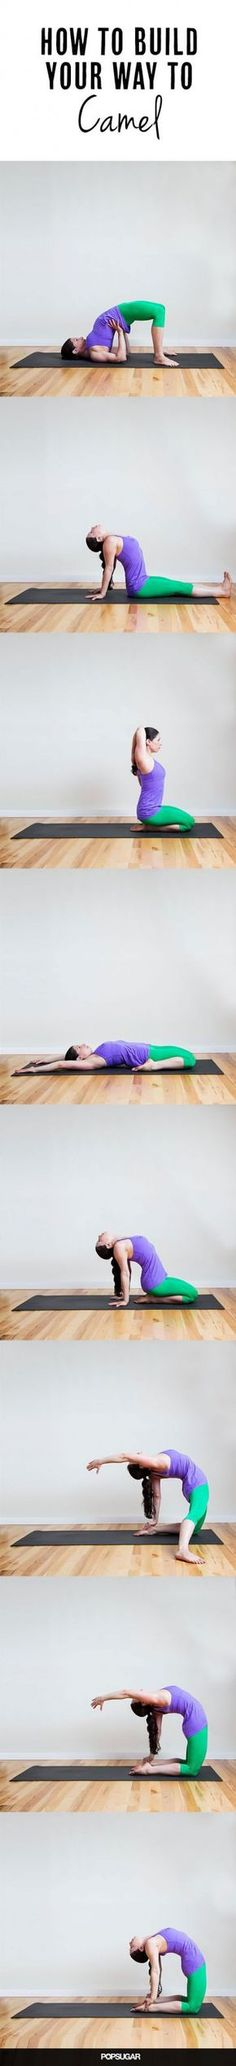 Great poses to lead you to camel pose. Camel Yoga Pose (Ustrasana) | Posted By: AdvancedWeightLossTips.com